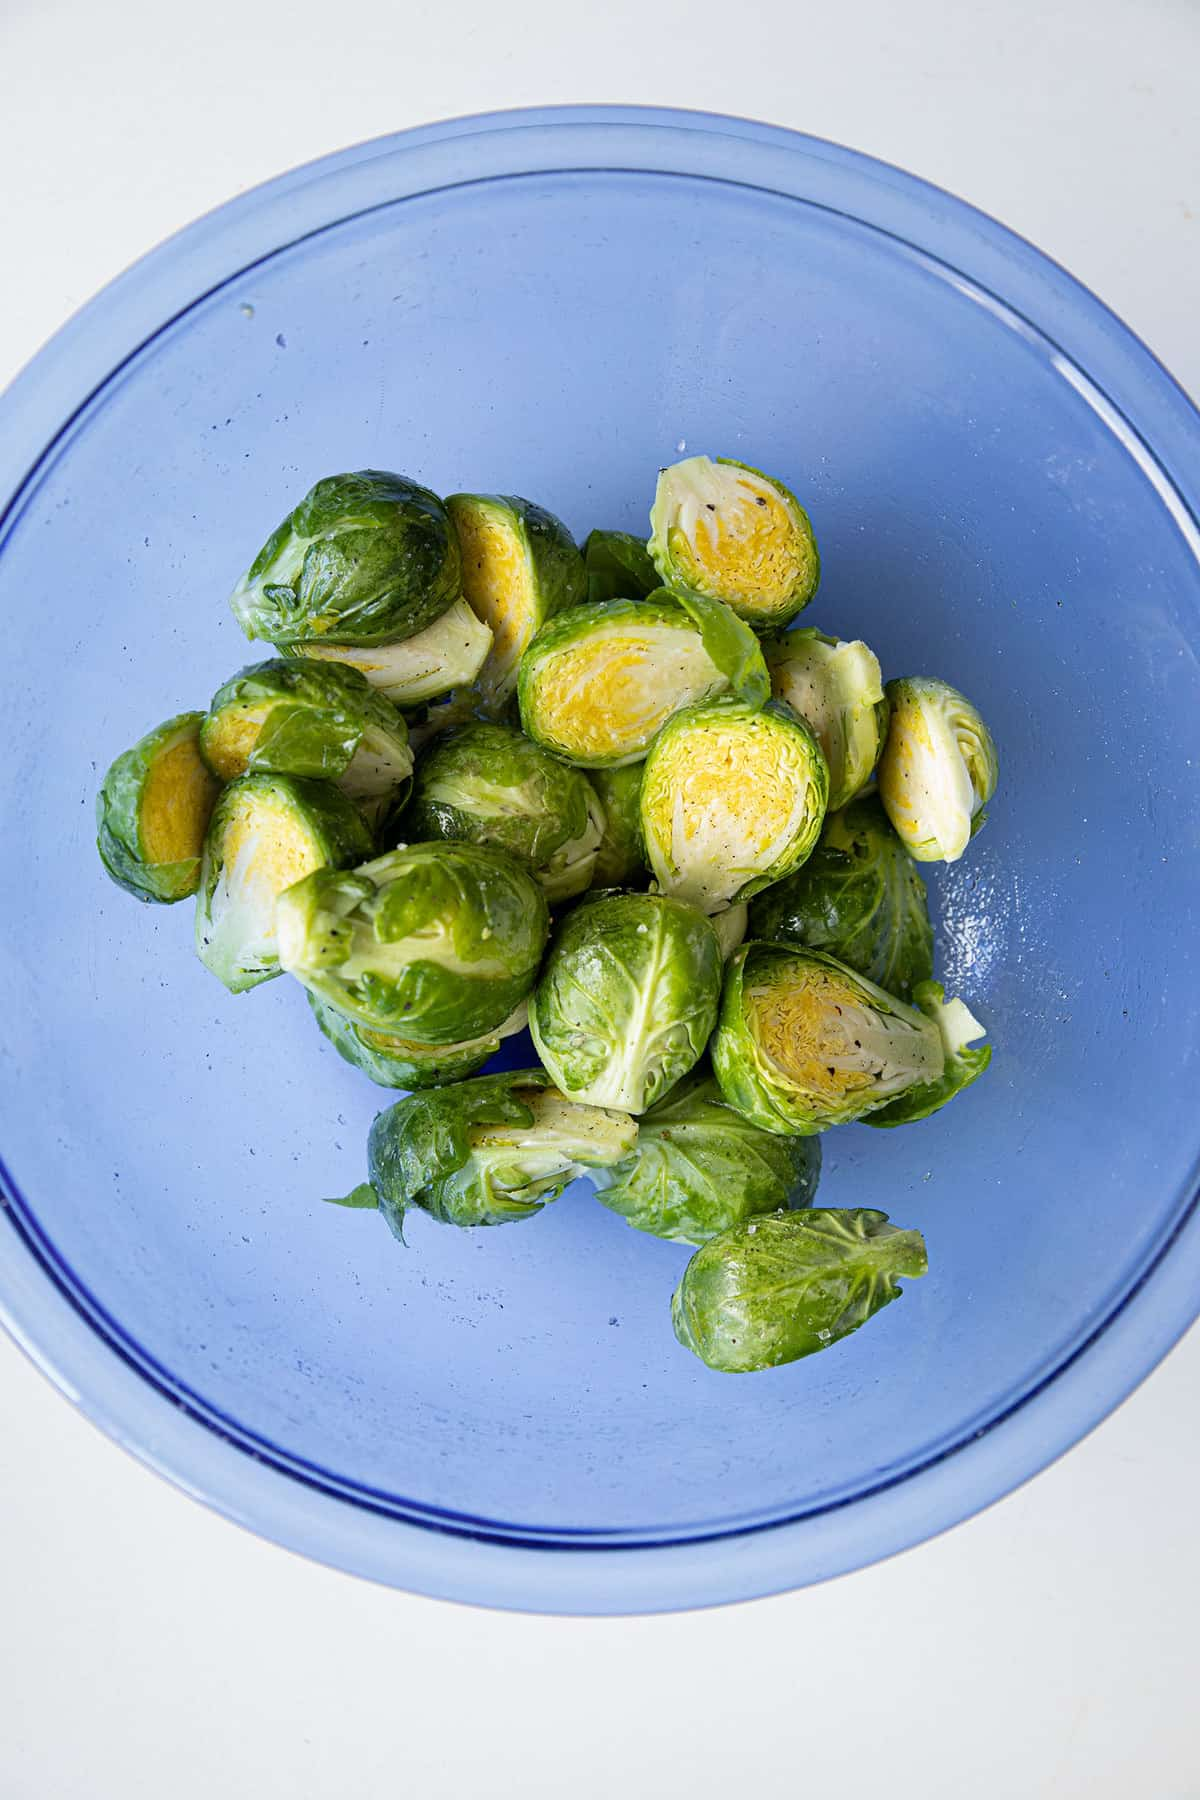 brussel sprouts in a bowl coated in olive oil and salt and pepper